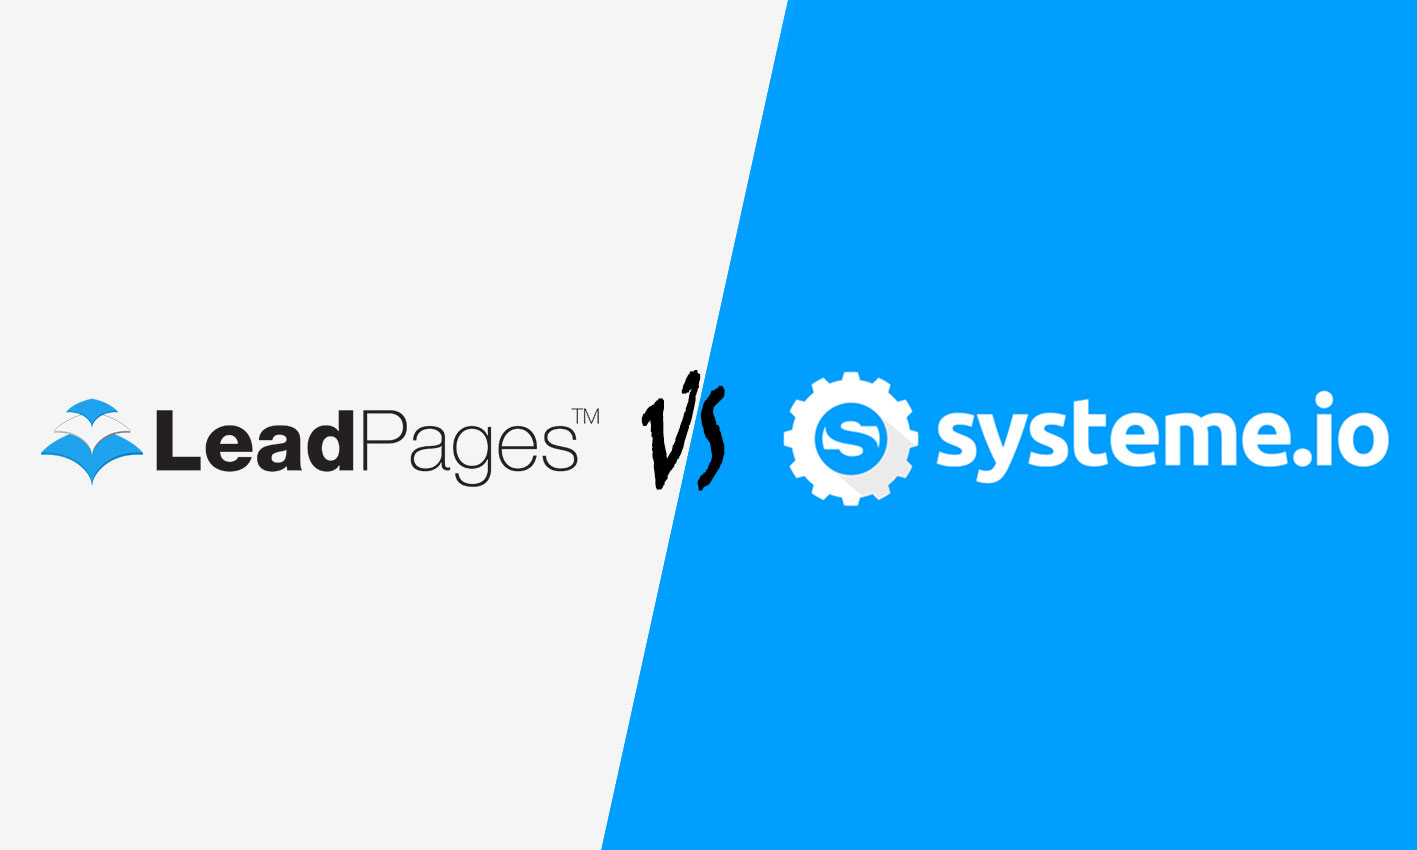 Leadpages vs Systeme.io